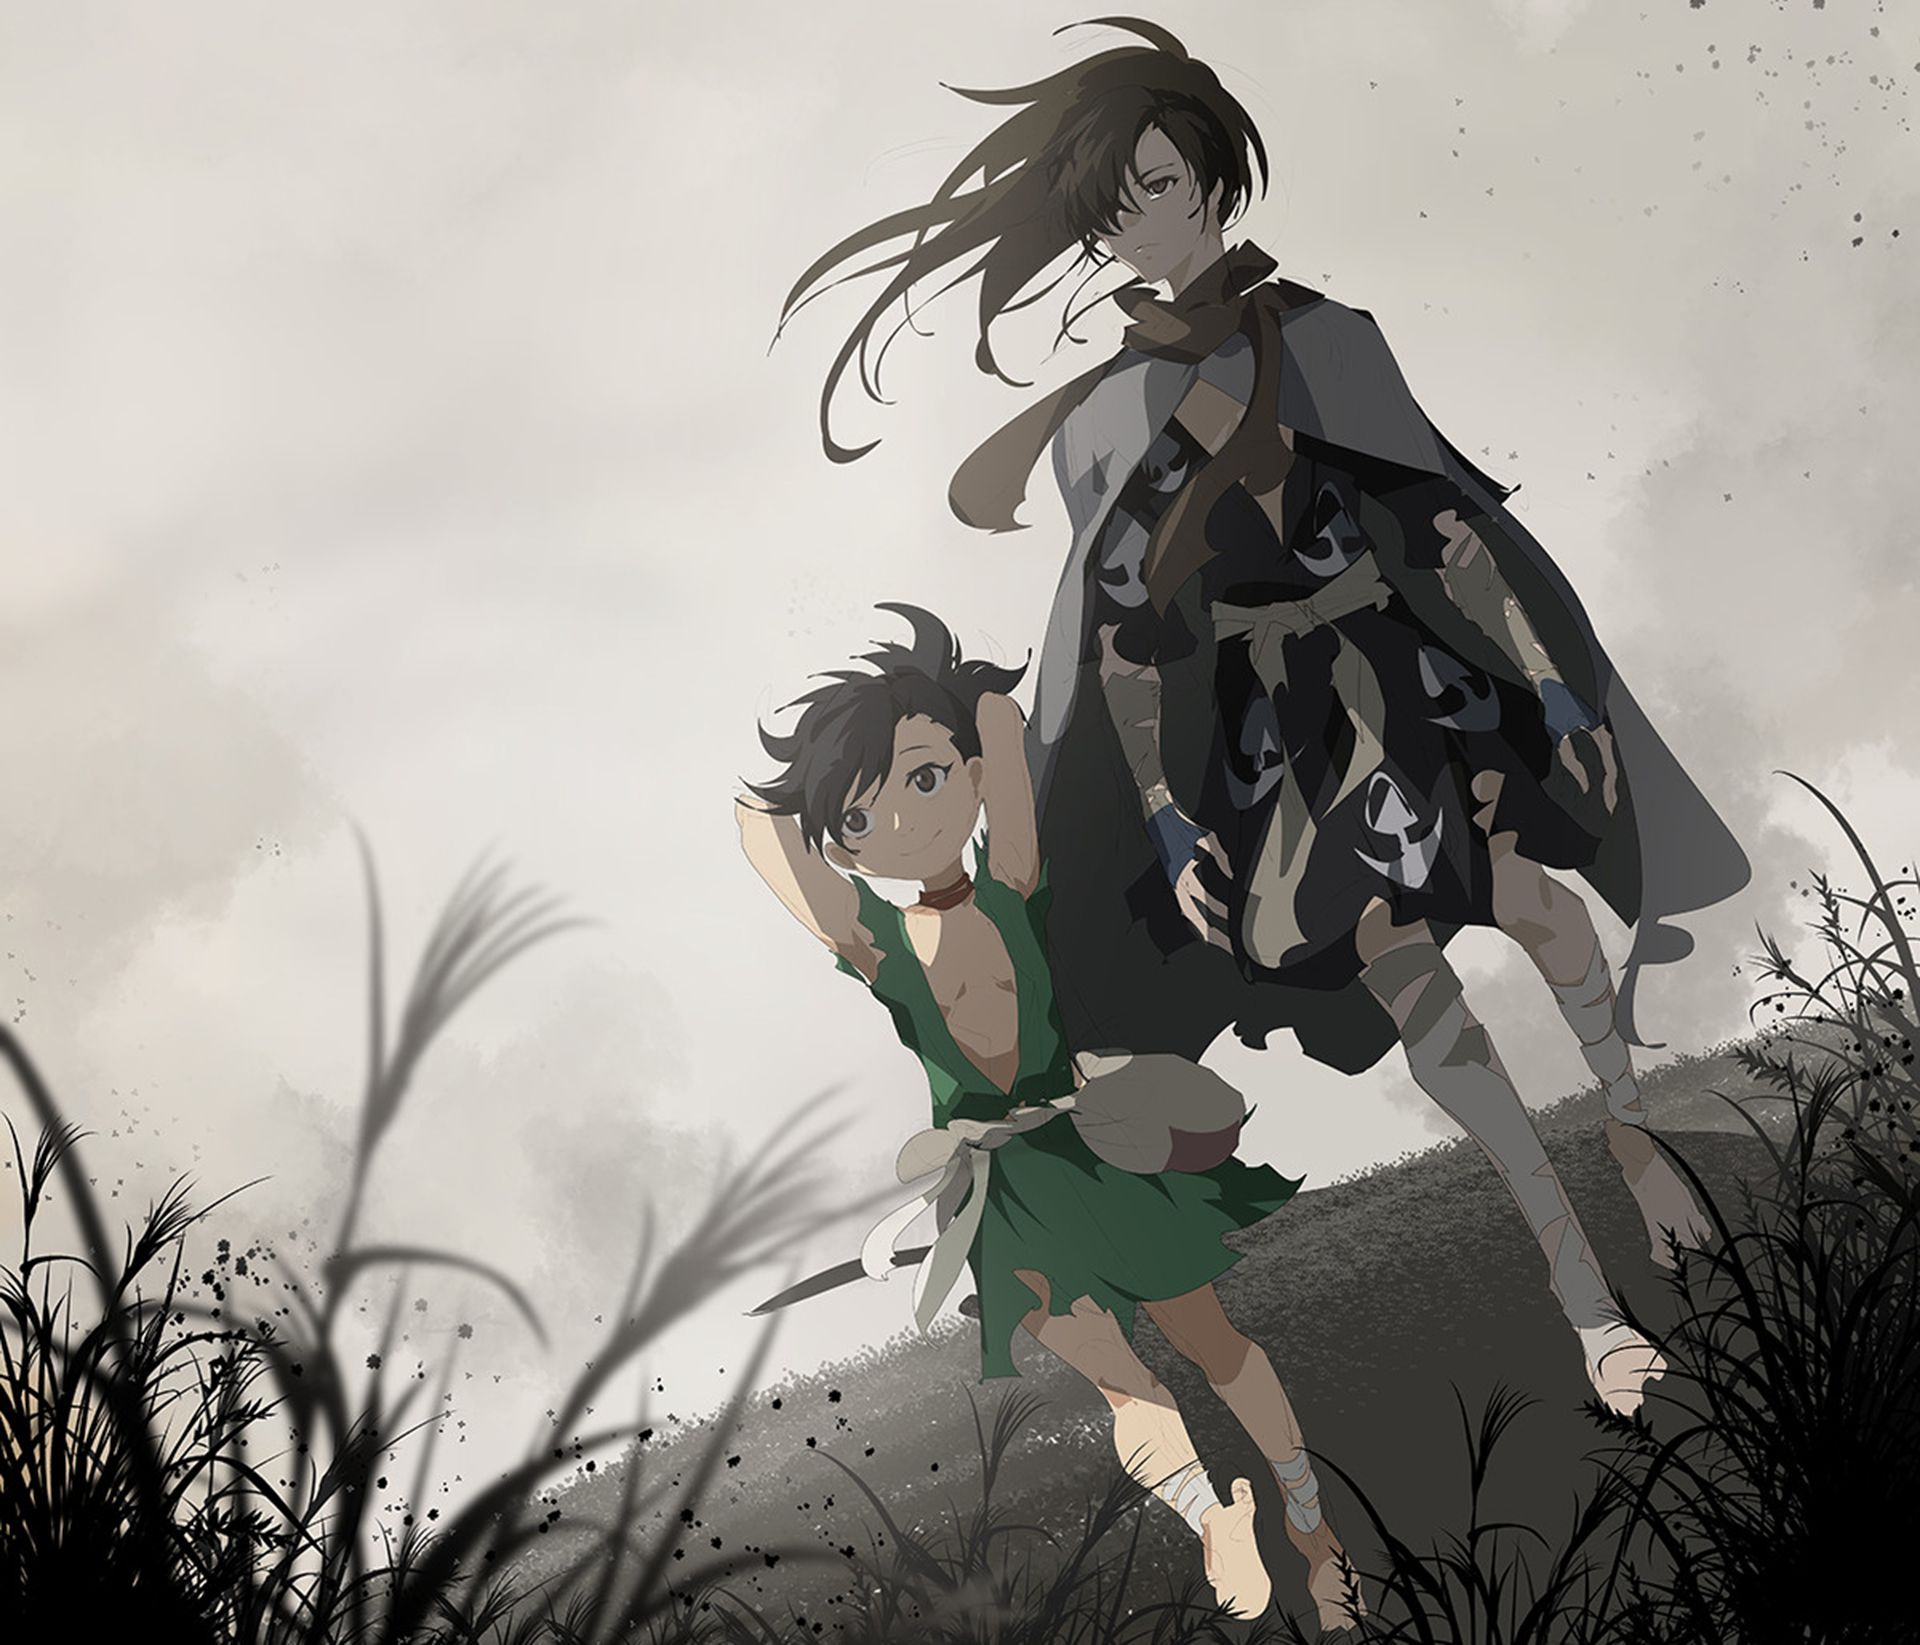 Dororo (Anime Series) HD Images in 2020 Anime, Hd images